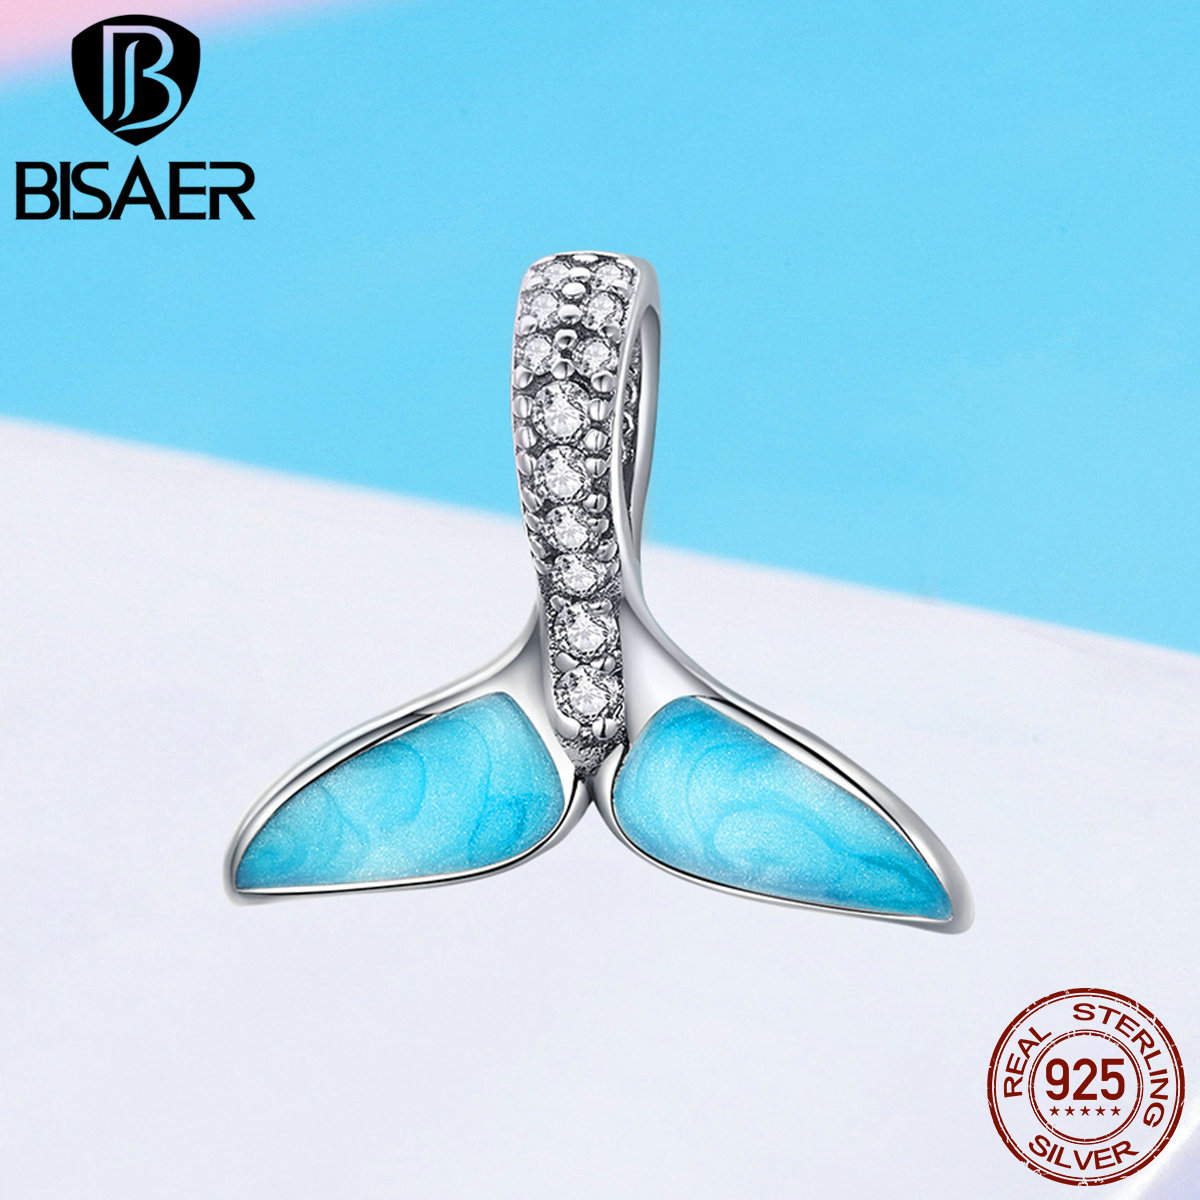 BISAER 925 Sterling Silver Blue Enamel Clear CZ Mermaid Pendant Charms for Charm Bracelet and Necklace Fashion Jewelry GXC1067